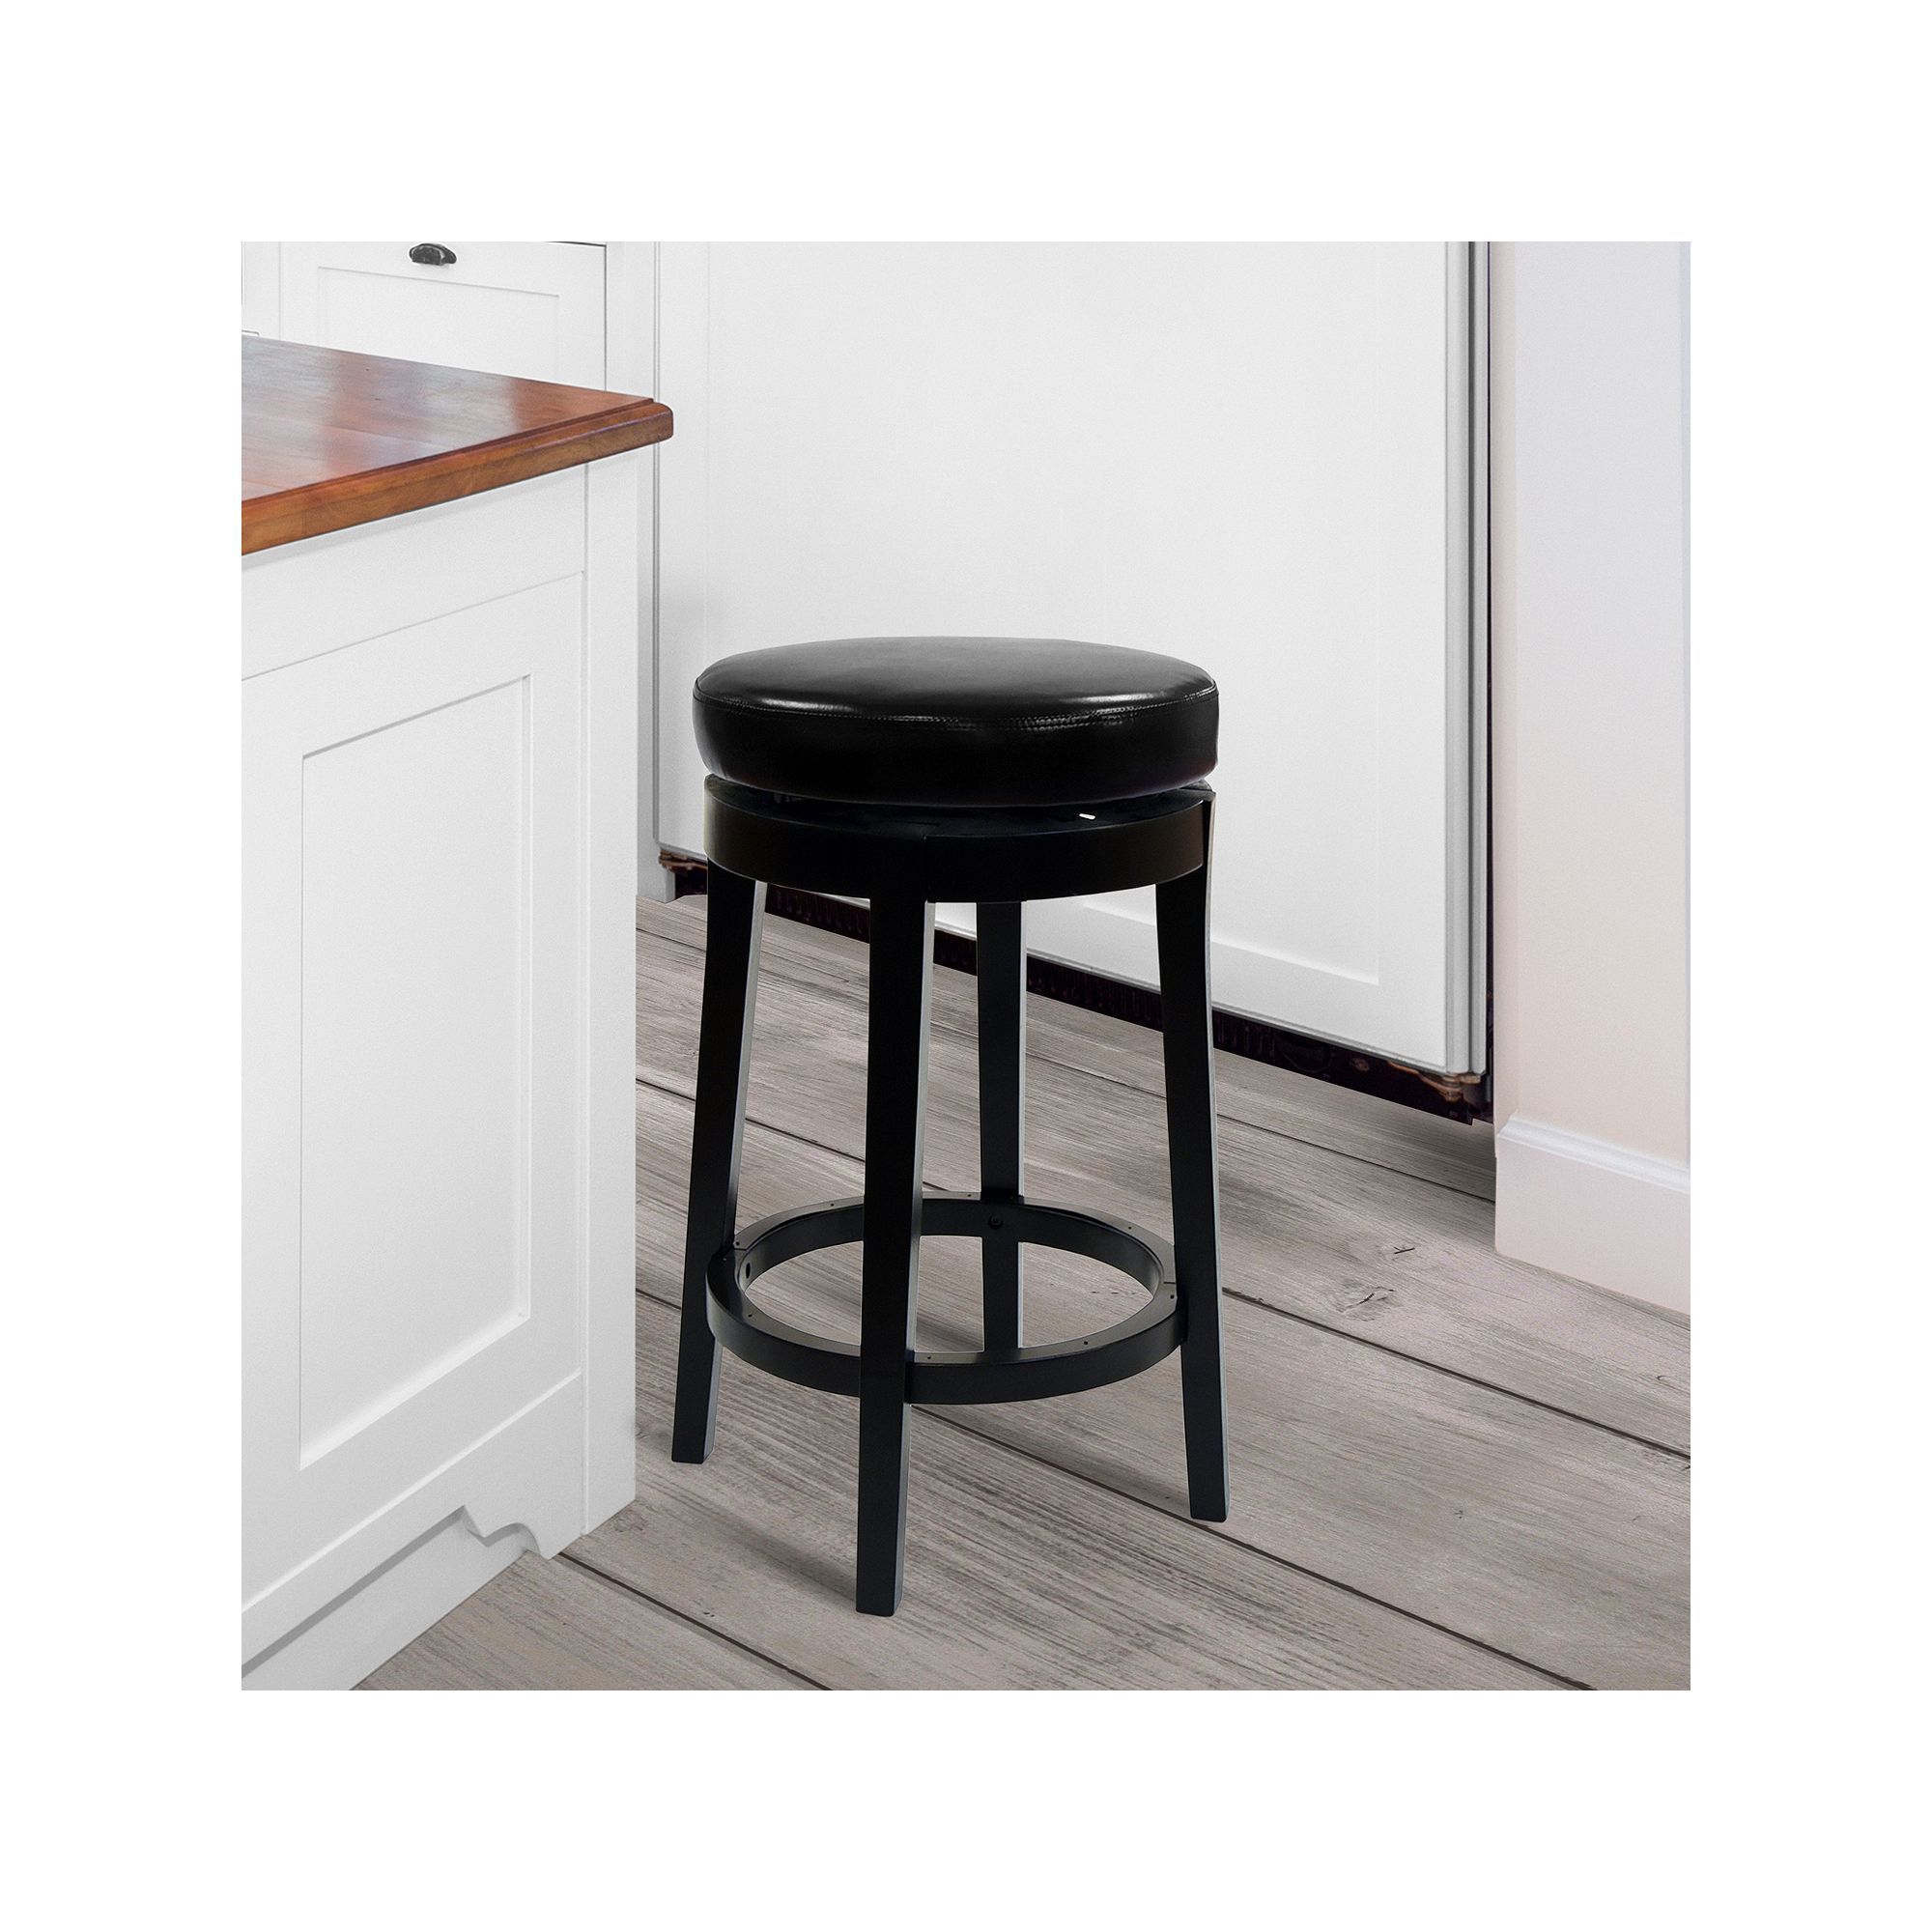 Armen Living Seaside Swivel Counter Stool, Black